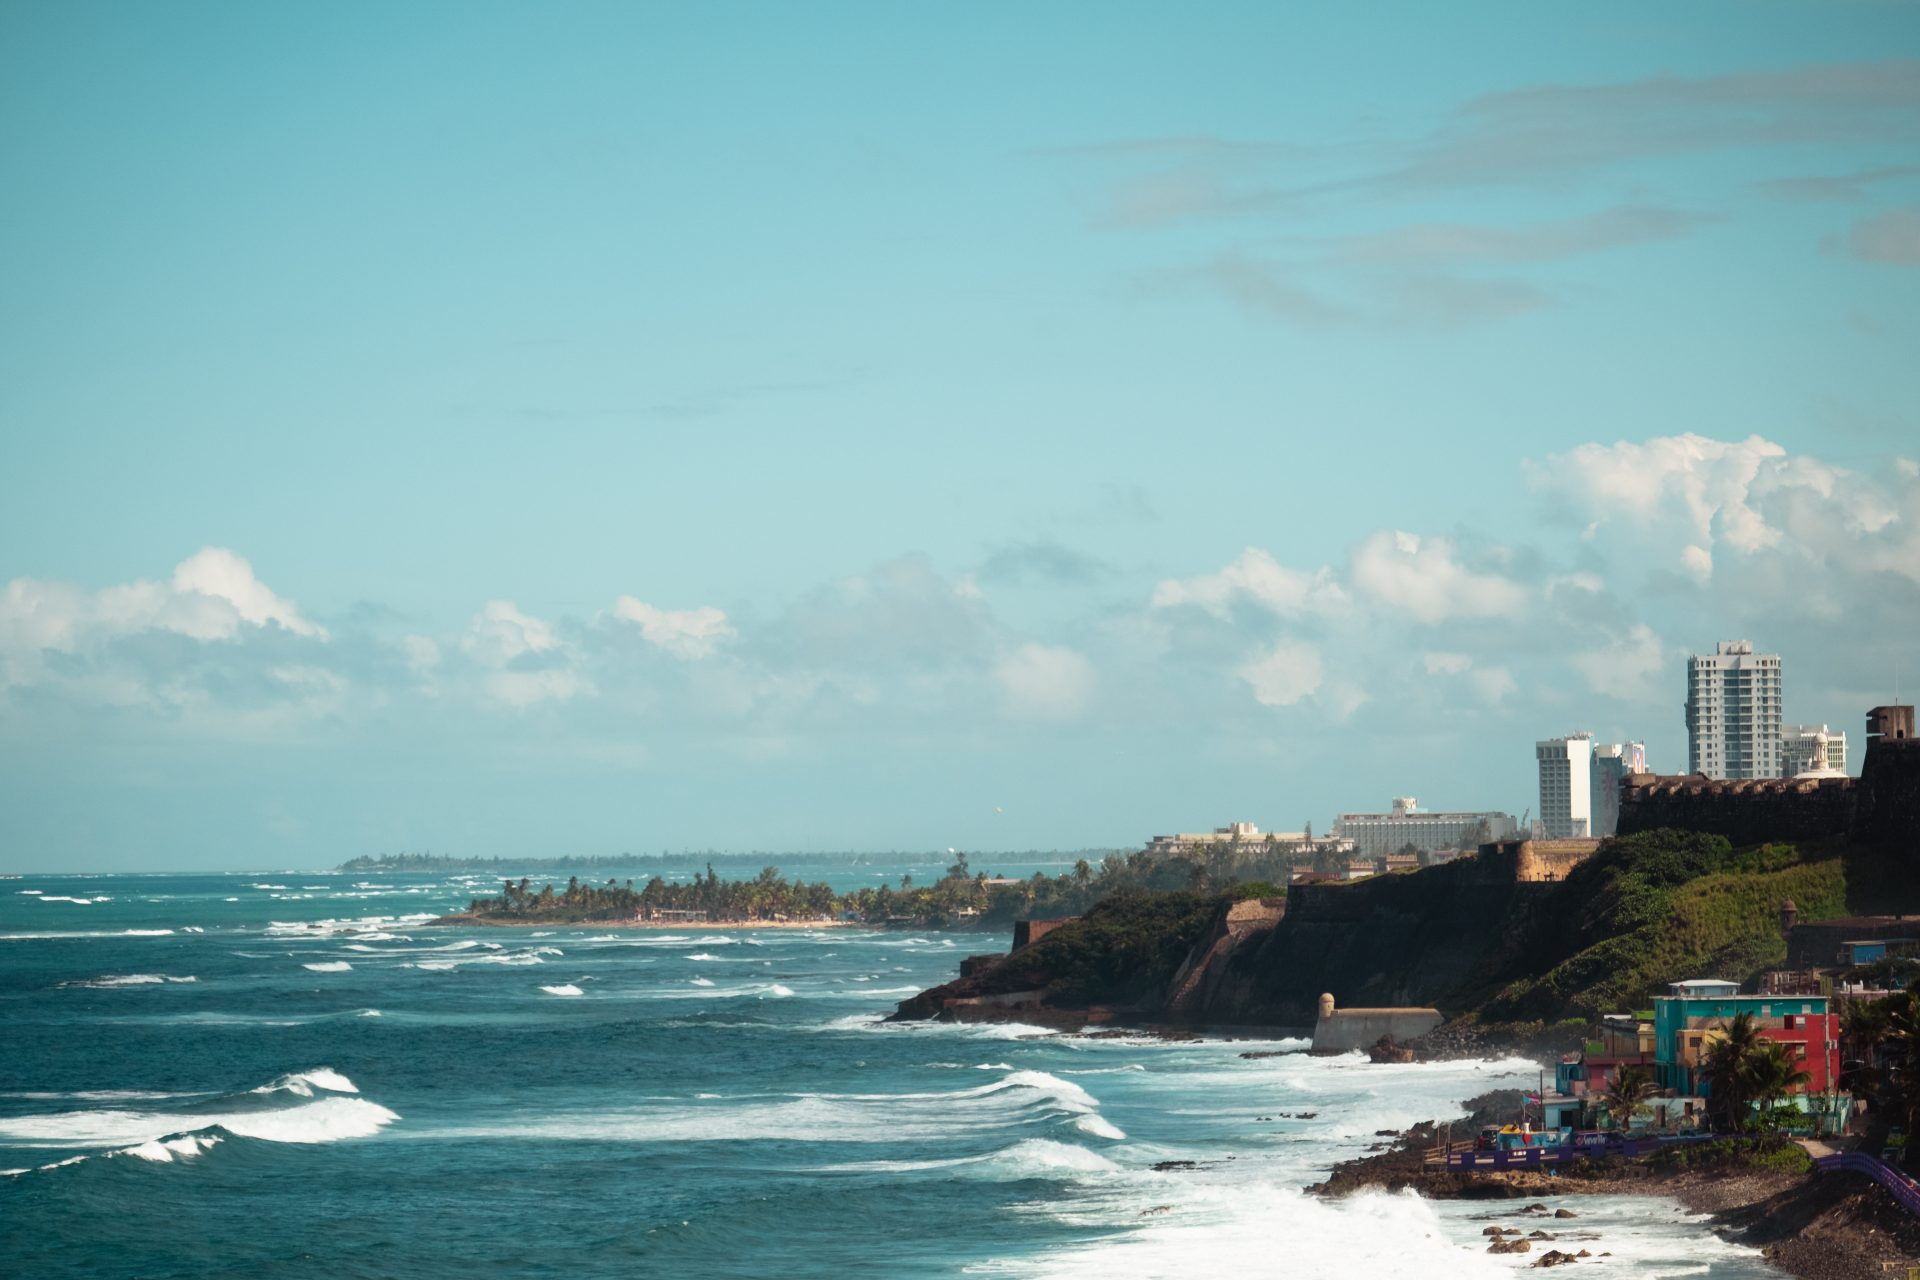 View of the ocean from old San juan Puerto Rico photo by Jo Kassis